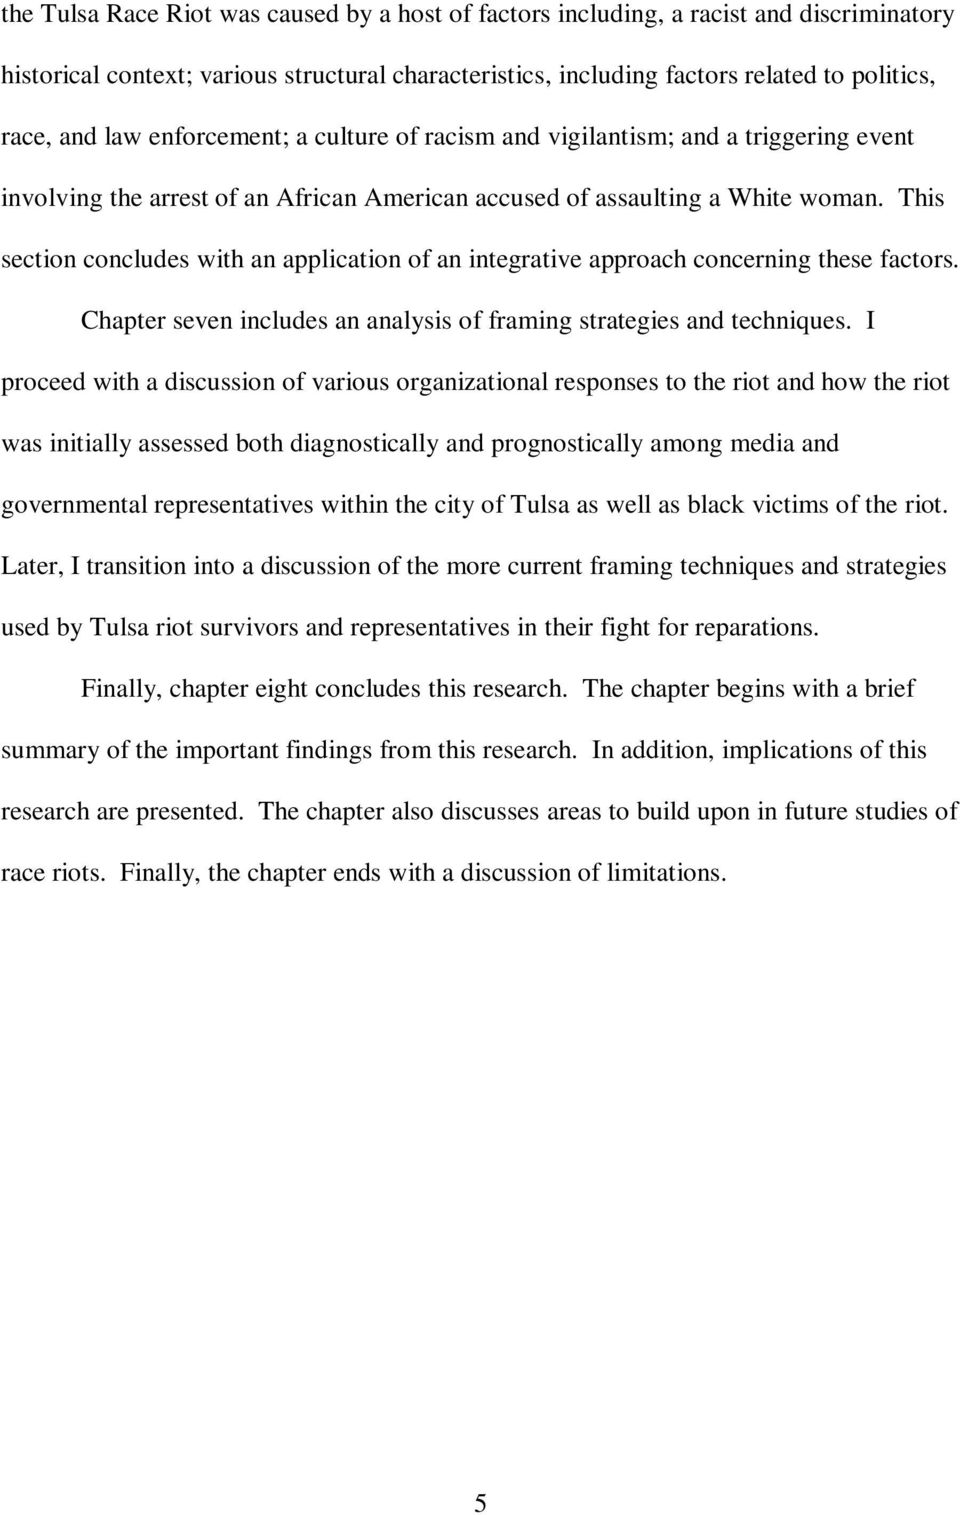 This section concludes with an application of an integrative approach concerning these factors. Chapter seven includes an analysis of framing strategies and techniques.